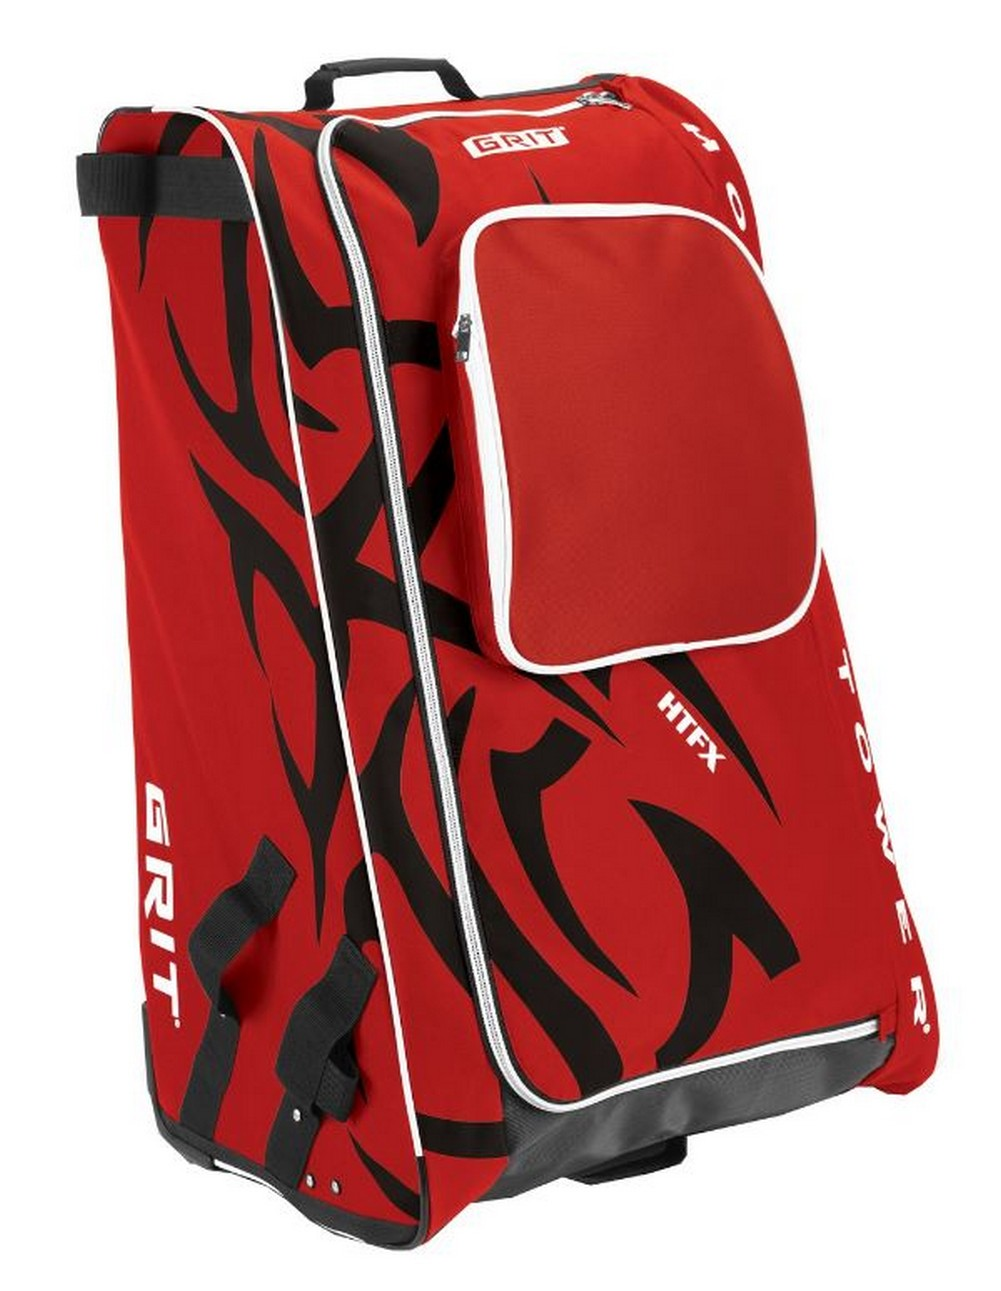 """Grit Inc HTFX Hockey Tower 36"""" Wheeled Equipment Bag Red HTFX036-CH (Chicago) by Grit Inc."""